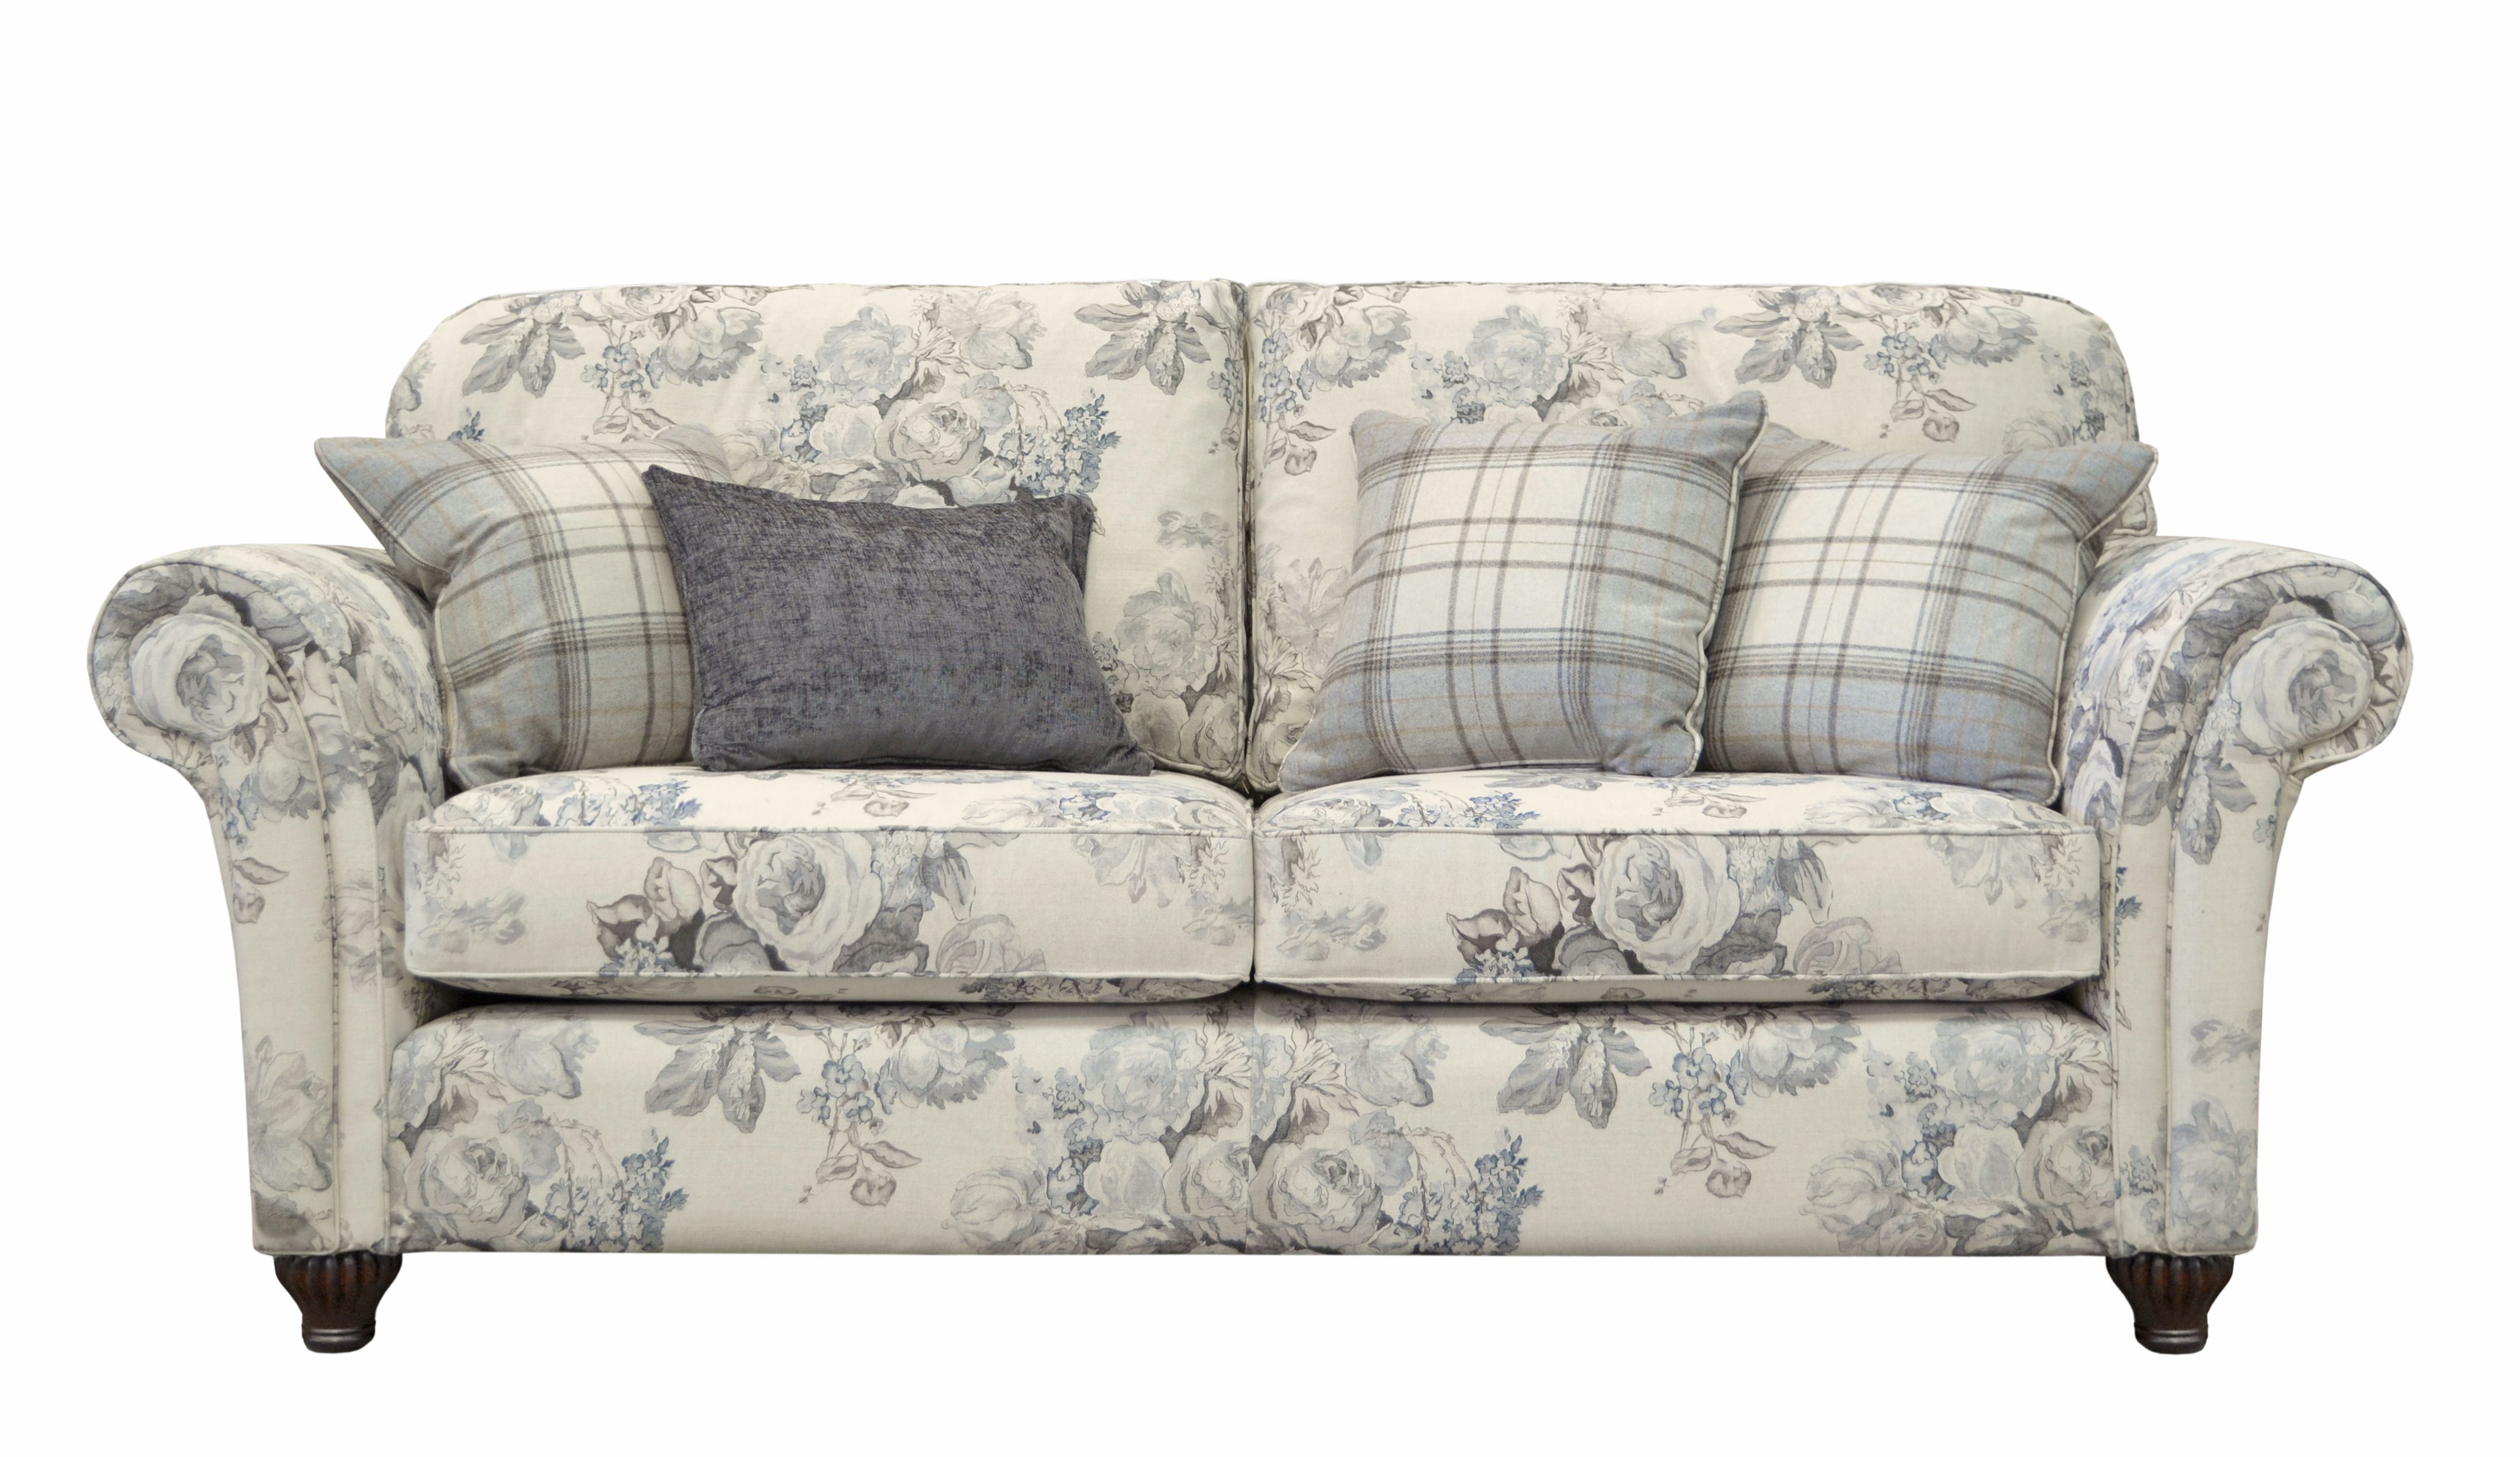 Pinholly Furney On I Love Interior Design! In 2018 | Pinterest For Tate Ii Sofa Chairs (Image 13 of 20)